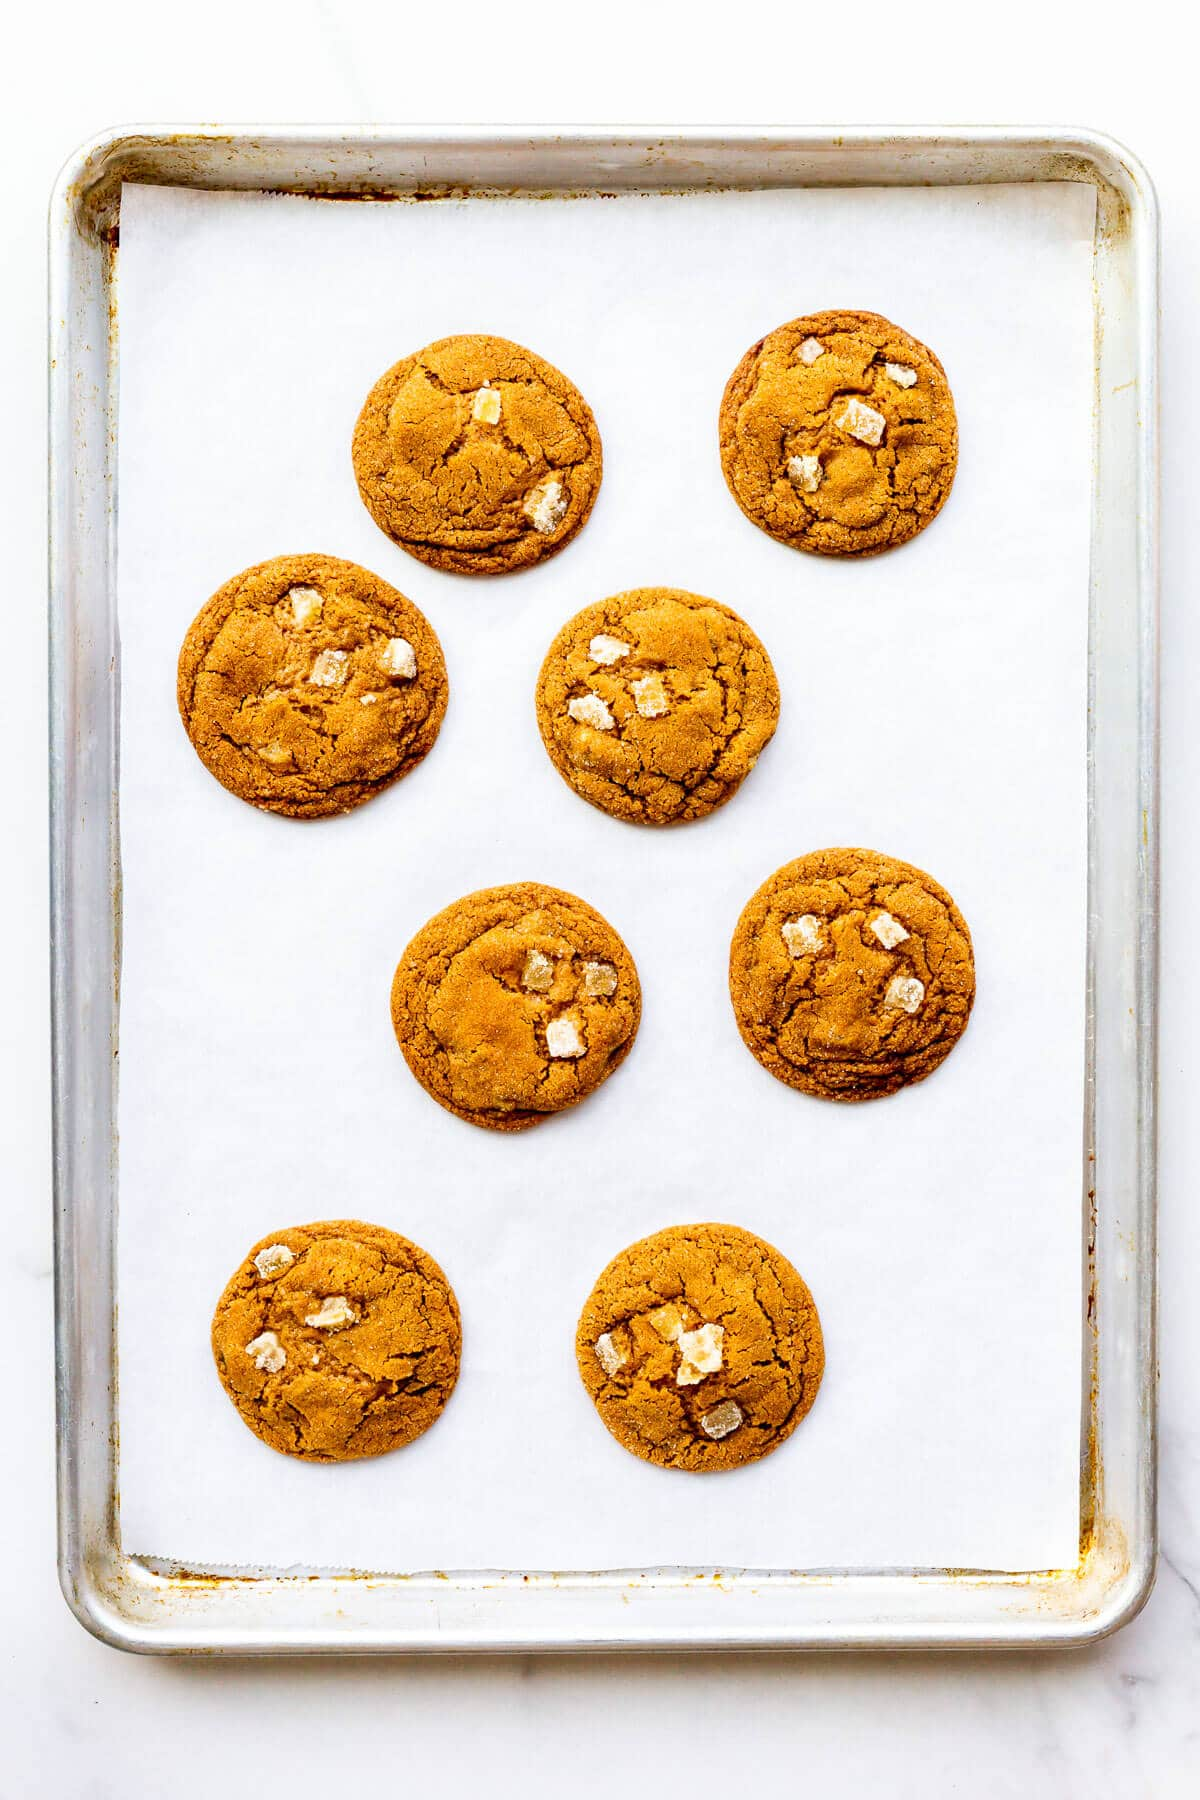 Freshly baked ginger cookies cooling slightly on a sheet pan to firm them up before transferring to a cooling rack.